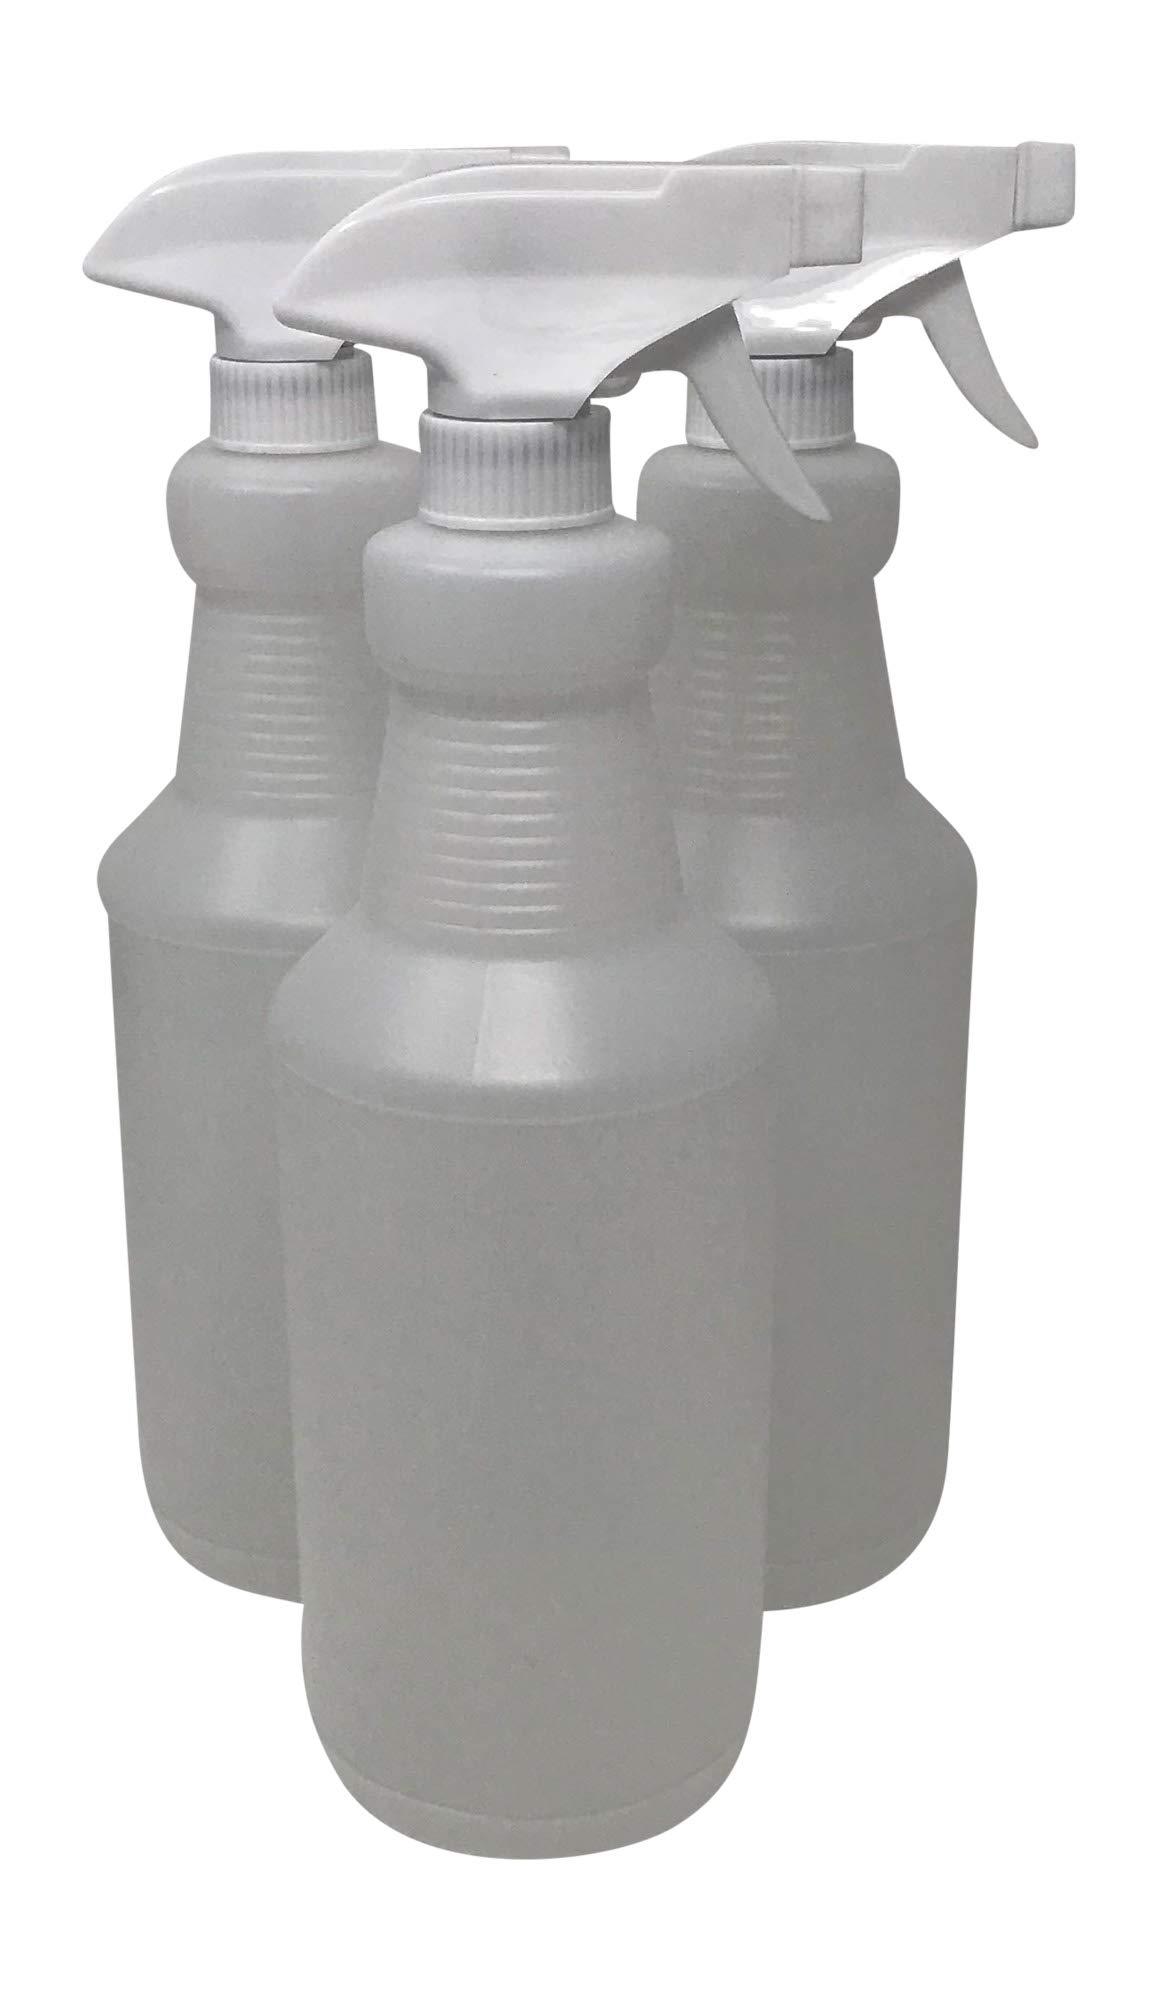 CSBD 32 oz Plastic Spray Bottles, 3 Pack, Empty and Reusable for Cleaning Solutions, Water, Auto Detailing, or Bathroom and Kitchen, Commercial and Residential, Made in USA 3 Pack (White/Simple)